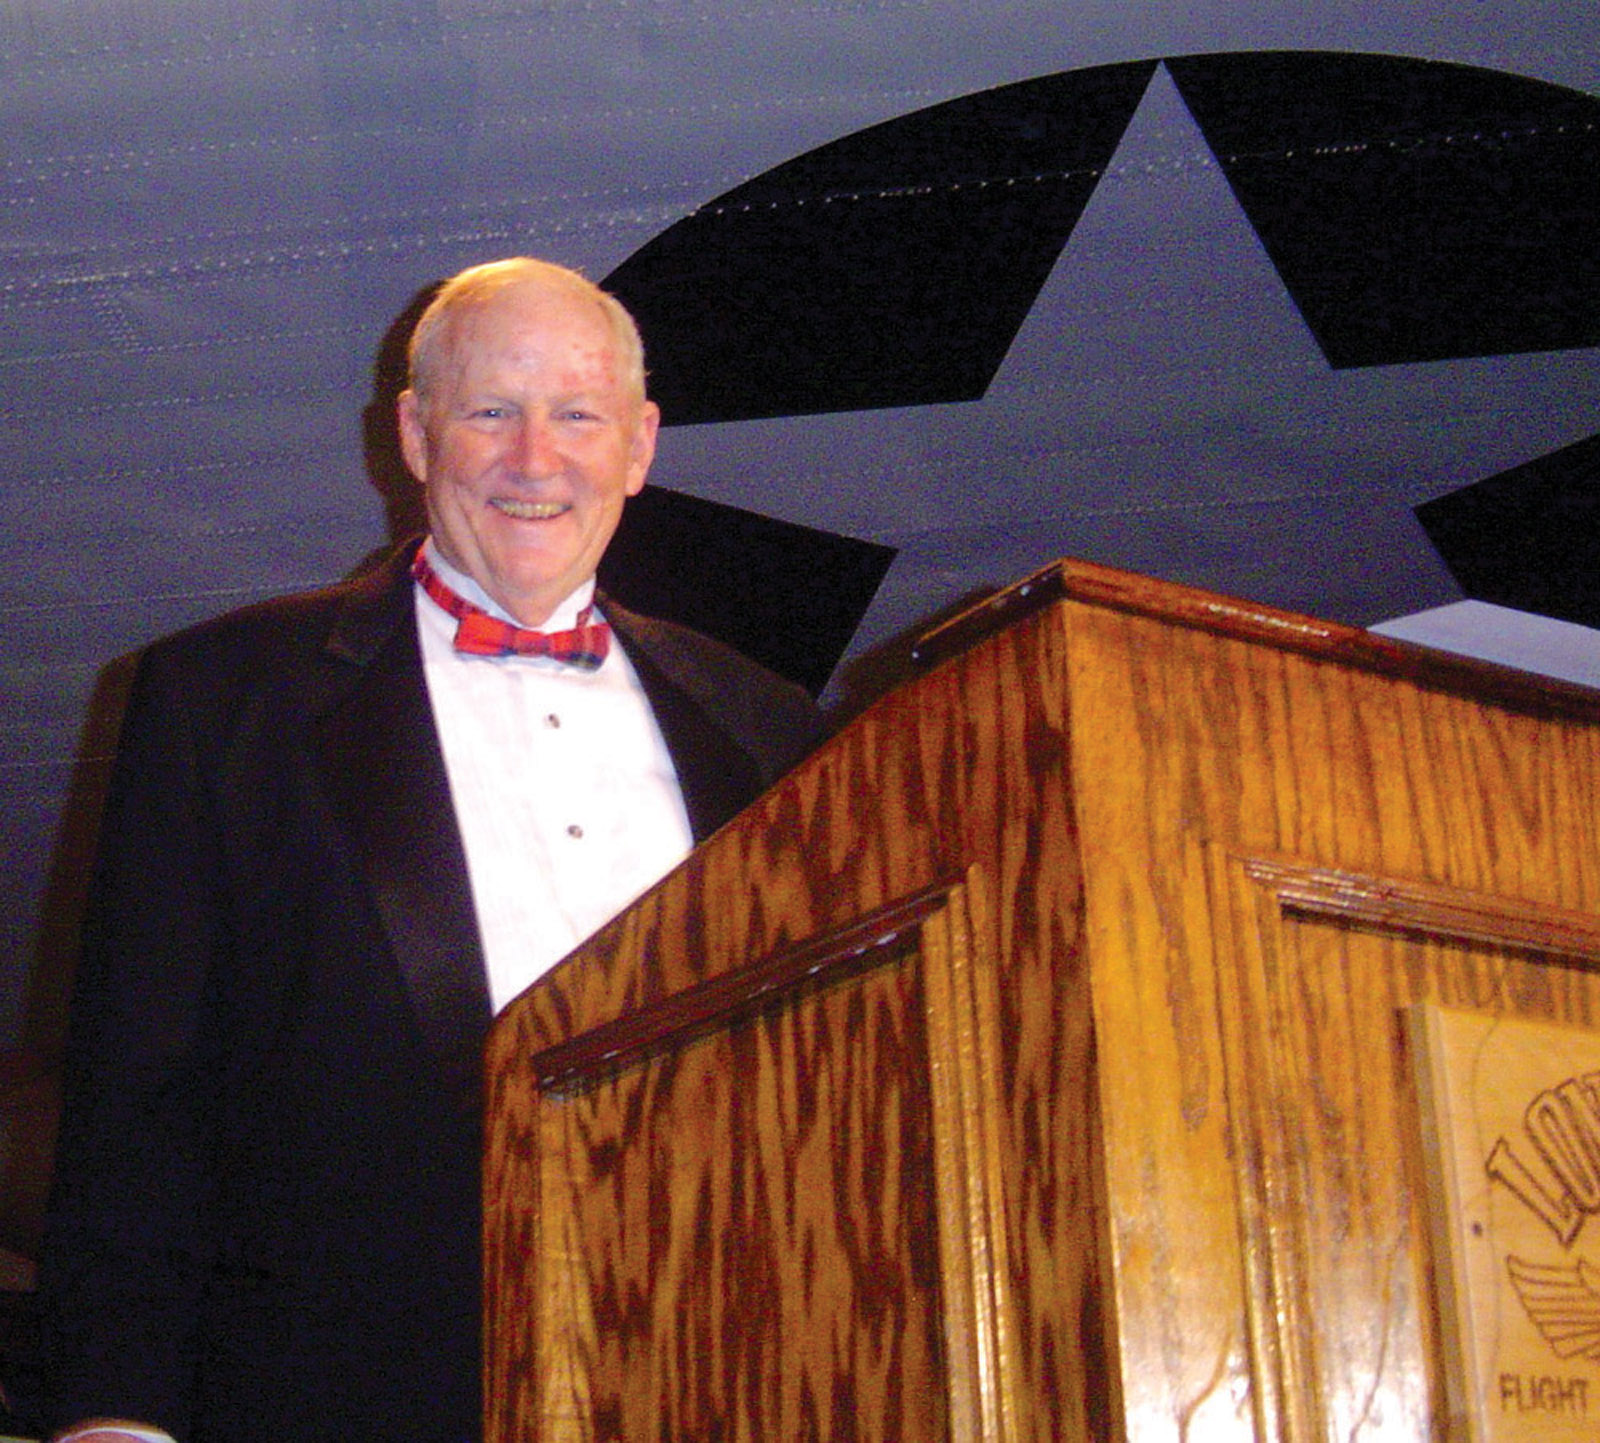 Texas Aviation Hall of Fame Inducts Class of 2005